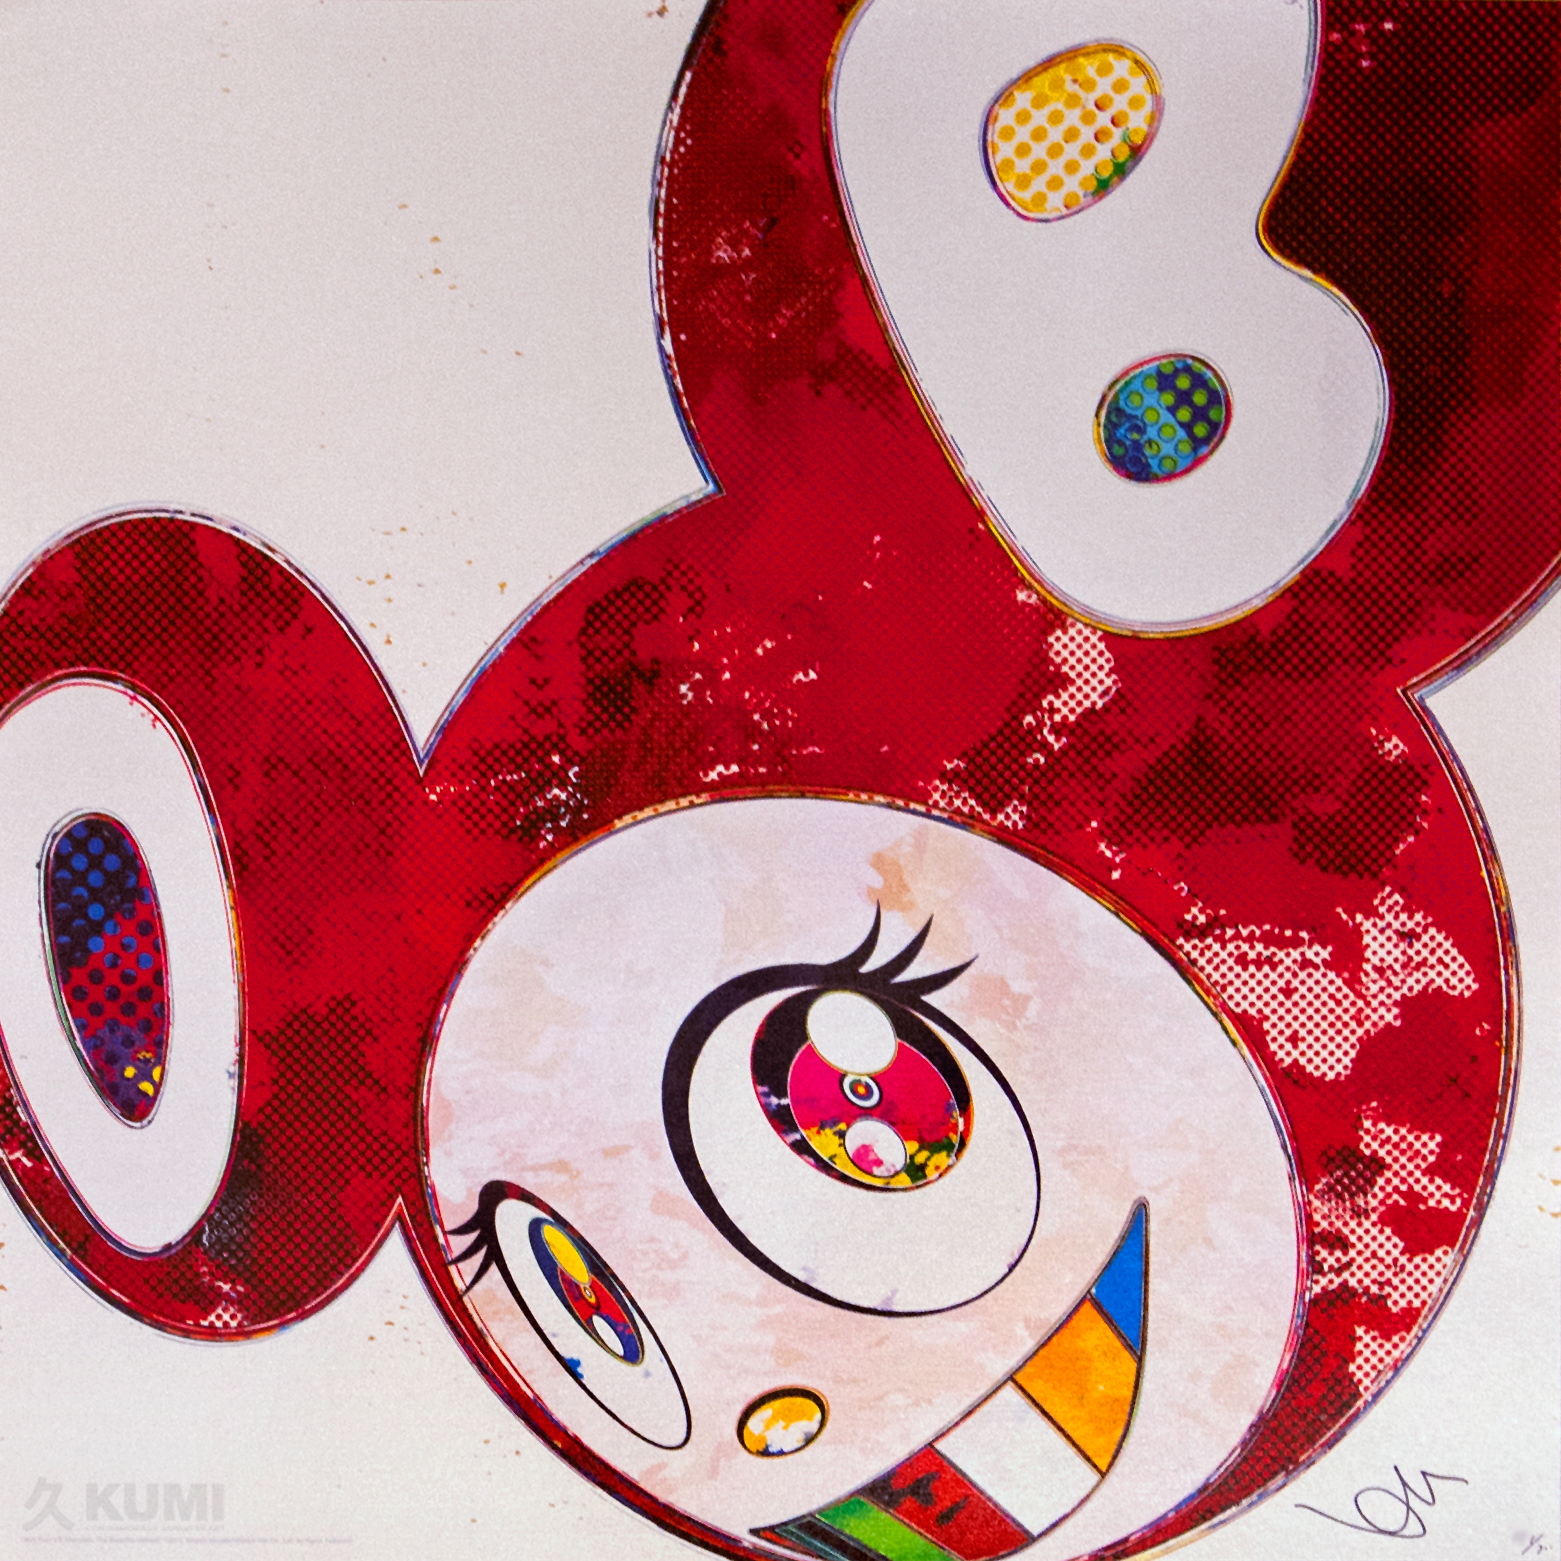 Takashi Murakami: And Then x6 Vermillion